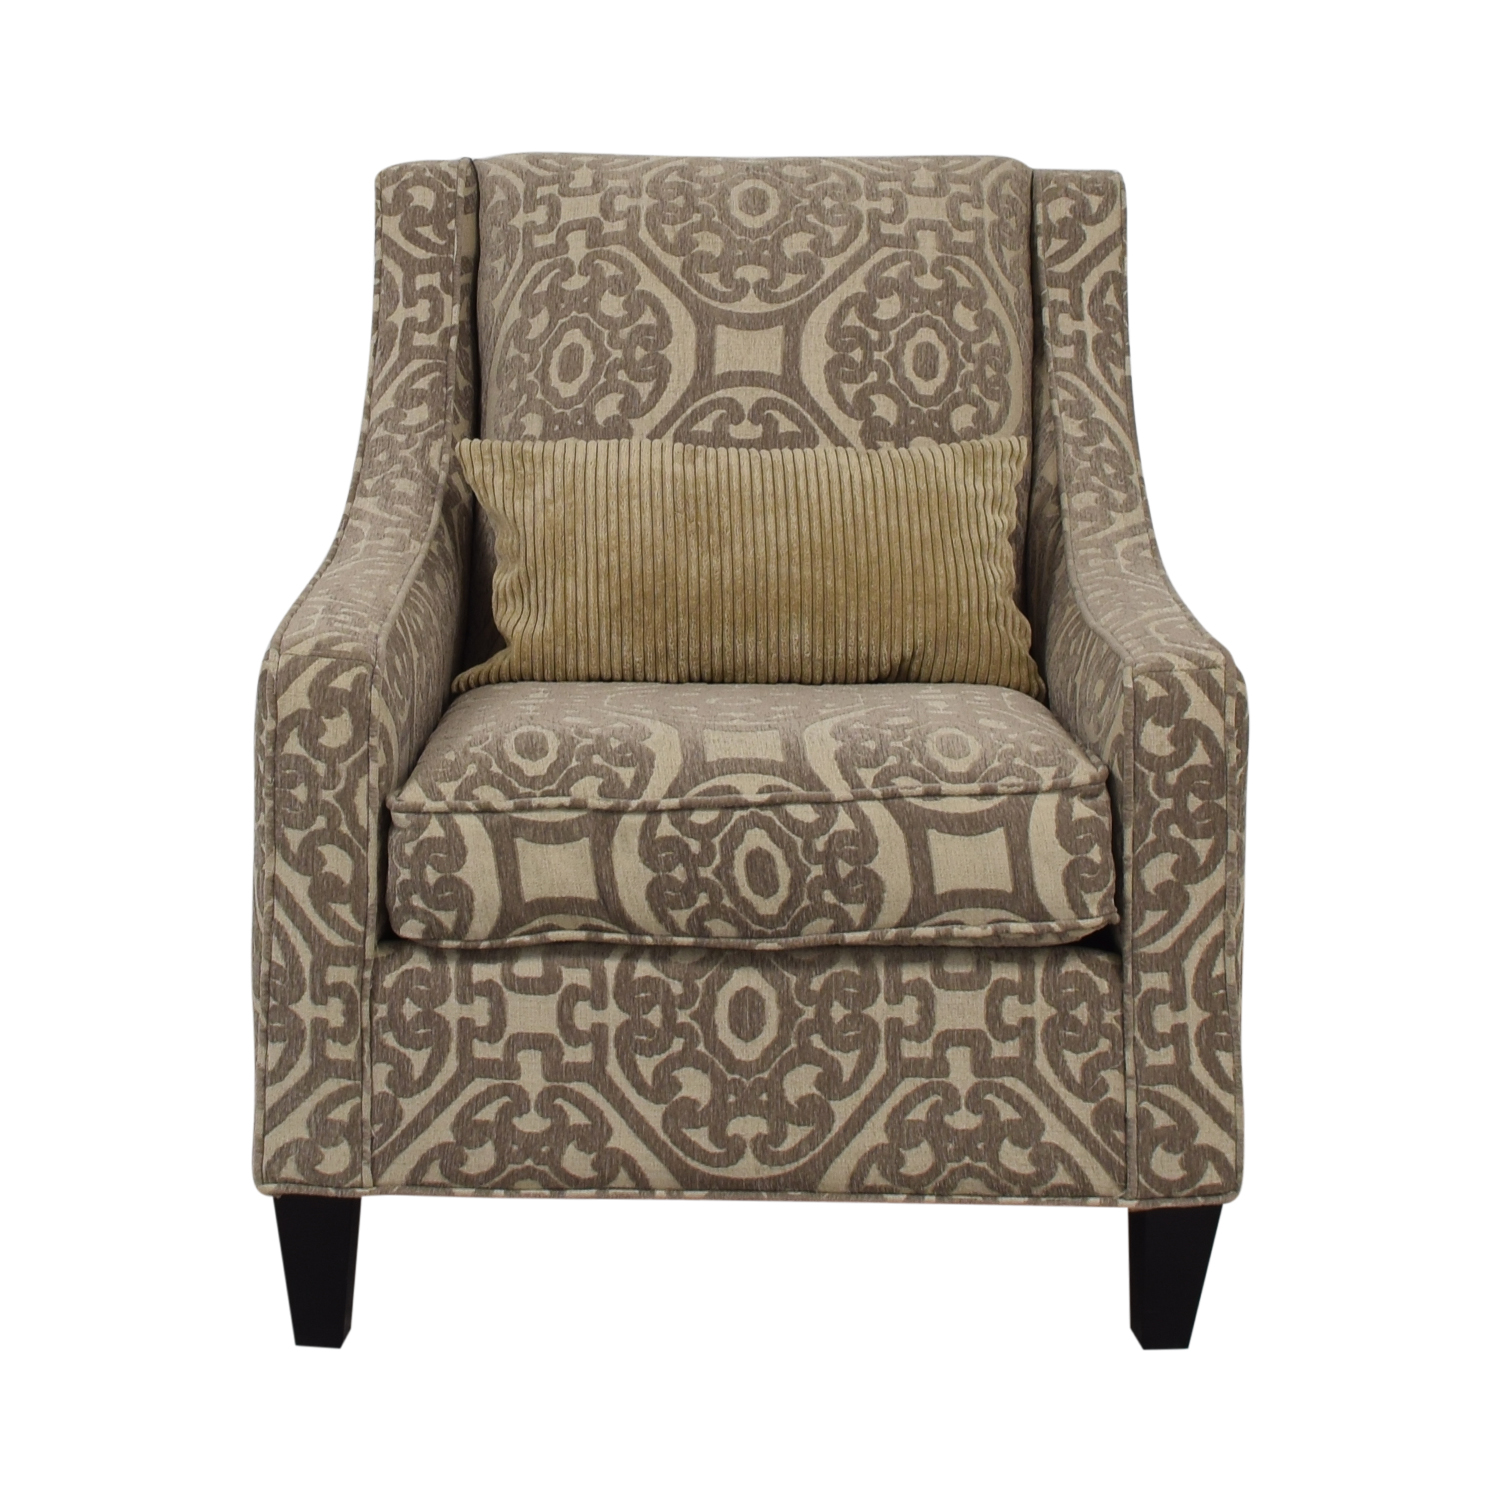 buy Raymour & Flanigan Raymour & Flanigan Cindy Crawford Calista Accent Chair online